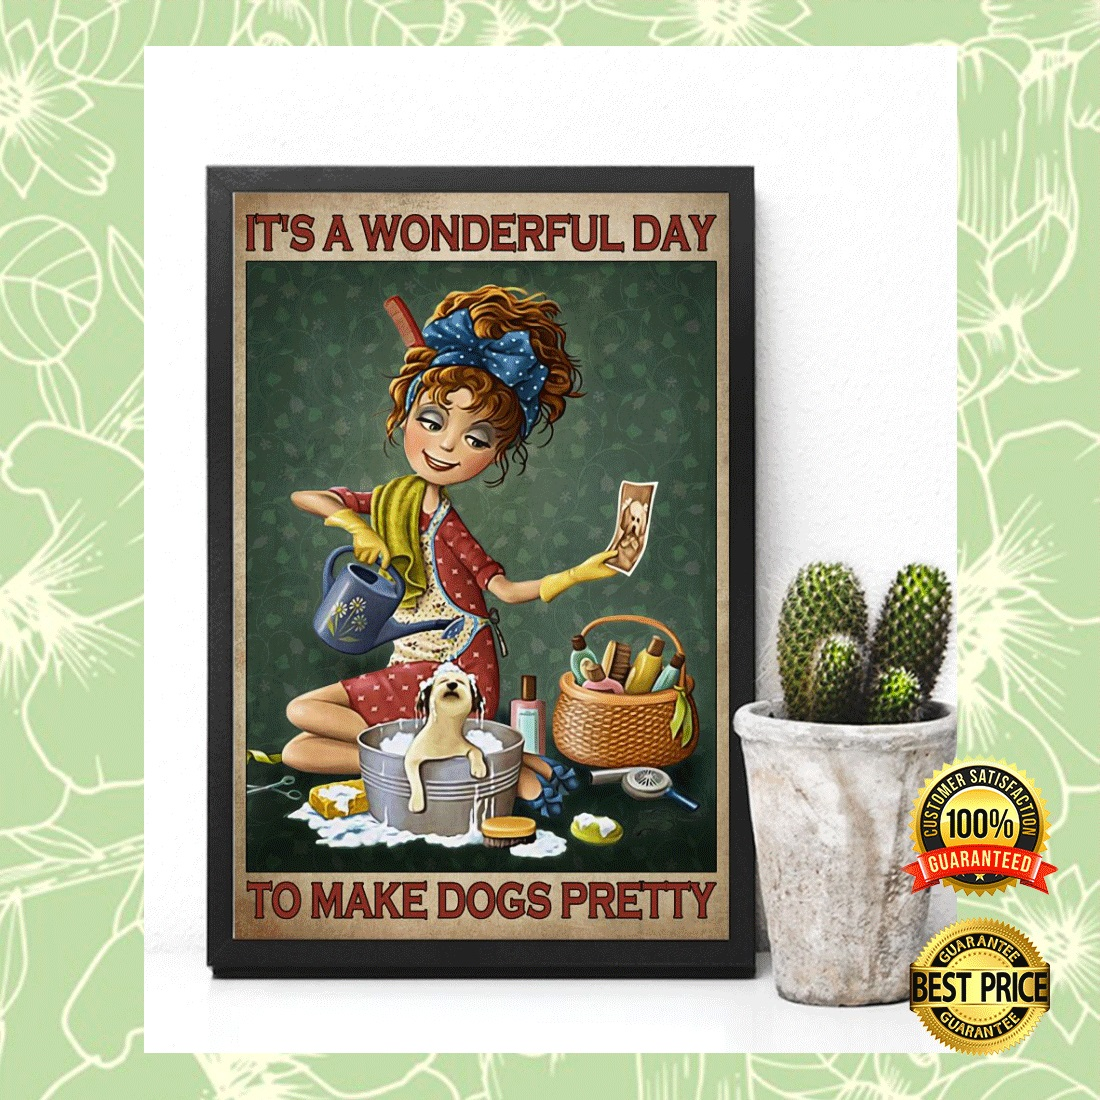 IT'S A WONDERFUL DAY TO MAKE DOGS PRETTY POSTER 4